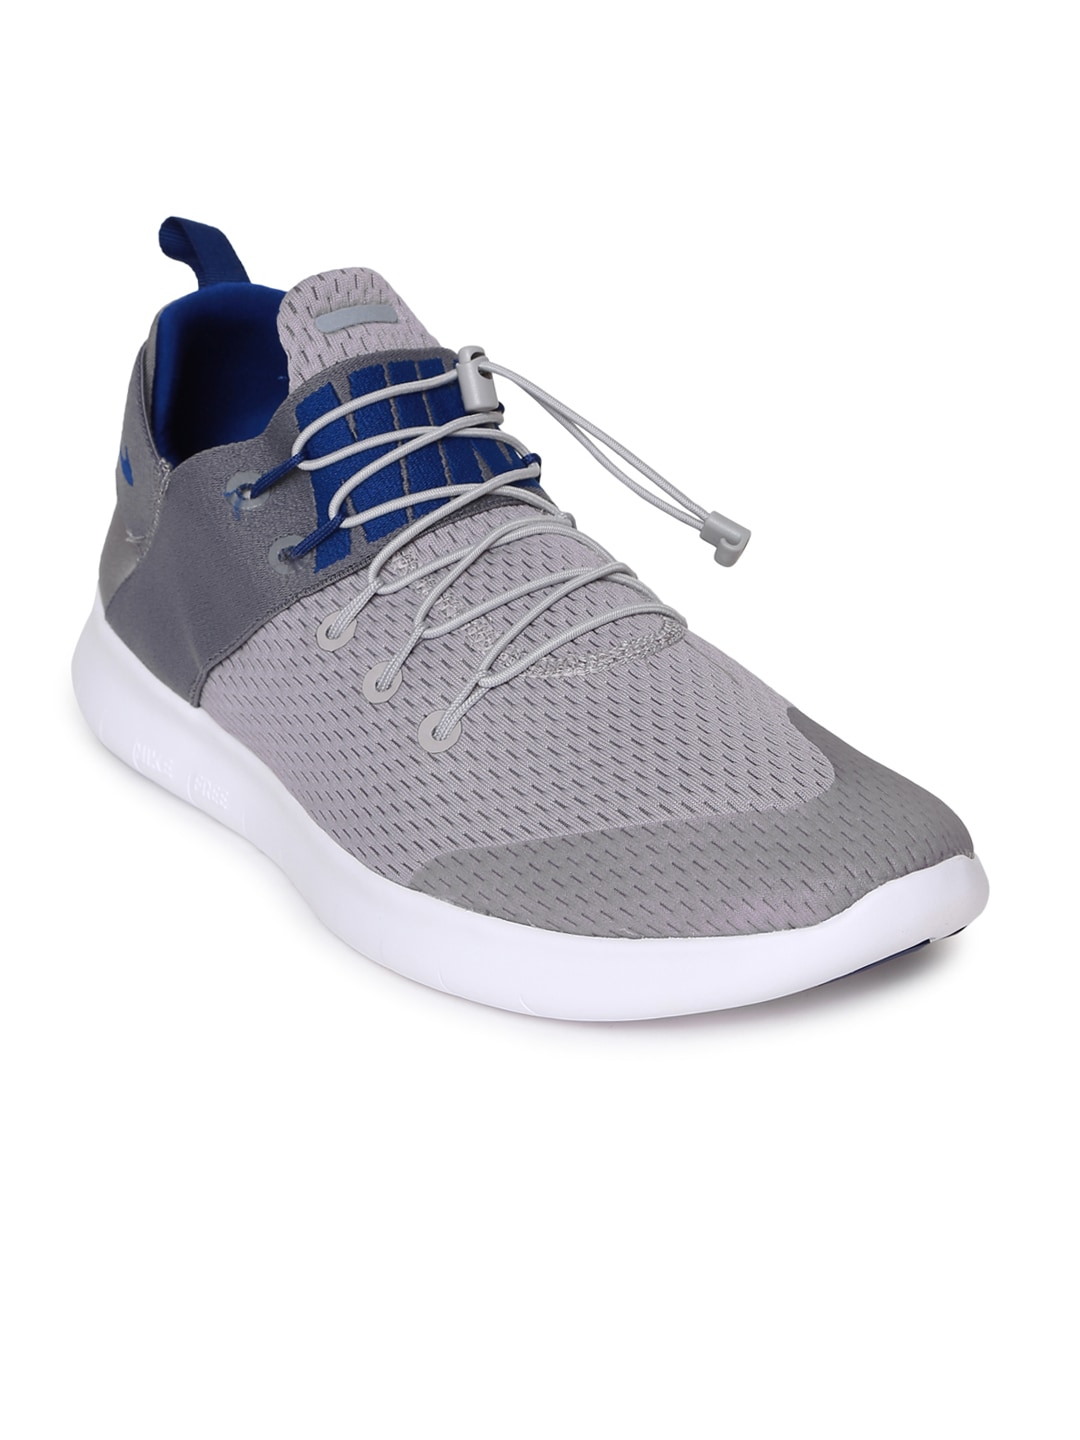 93c3c585156 Nike Free Rn - Buy Nike Free Rn online in India